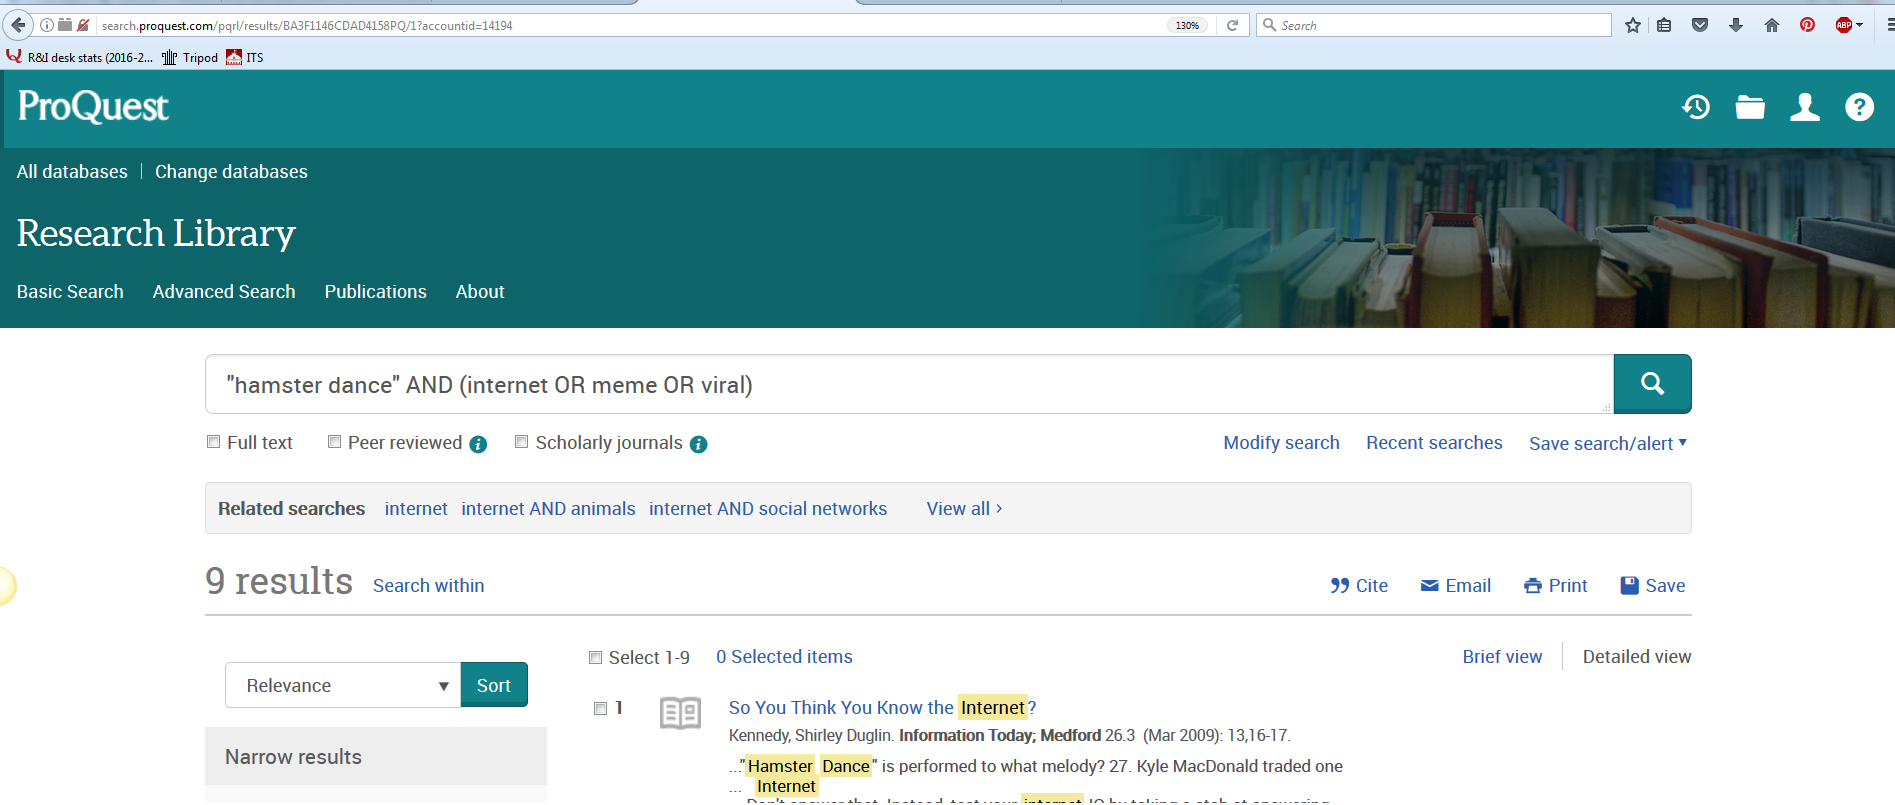 screenshot 1- proquest search results